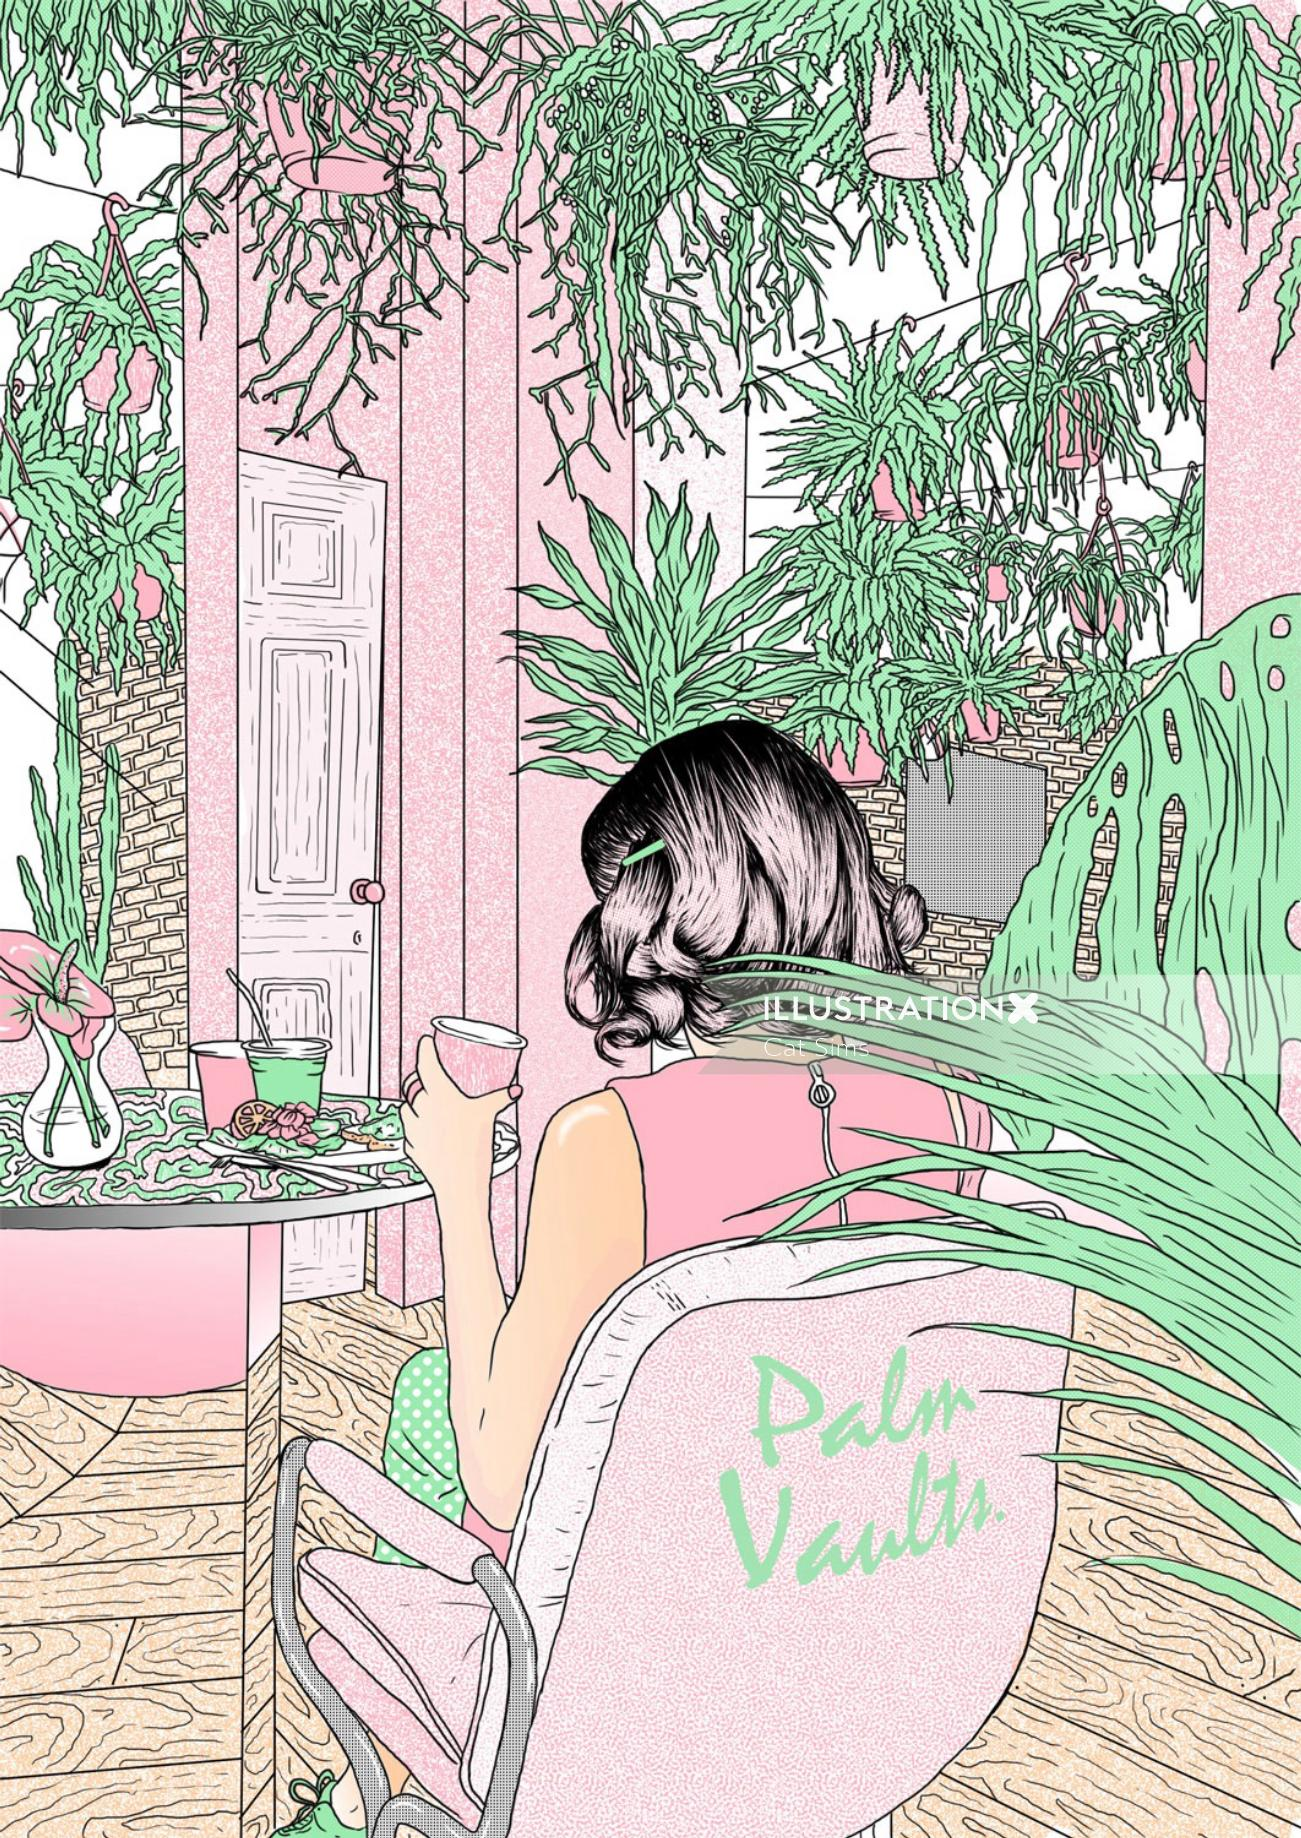 Lifestyle illustration of a lady in Palm Vaults cafe